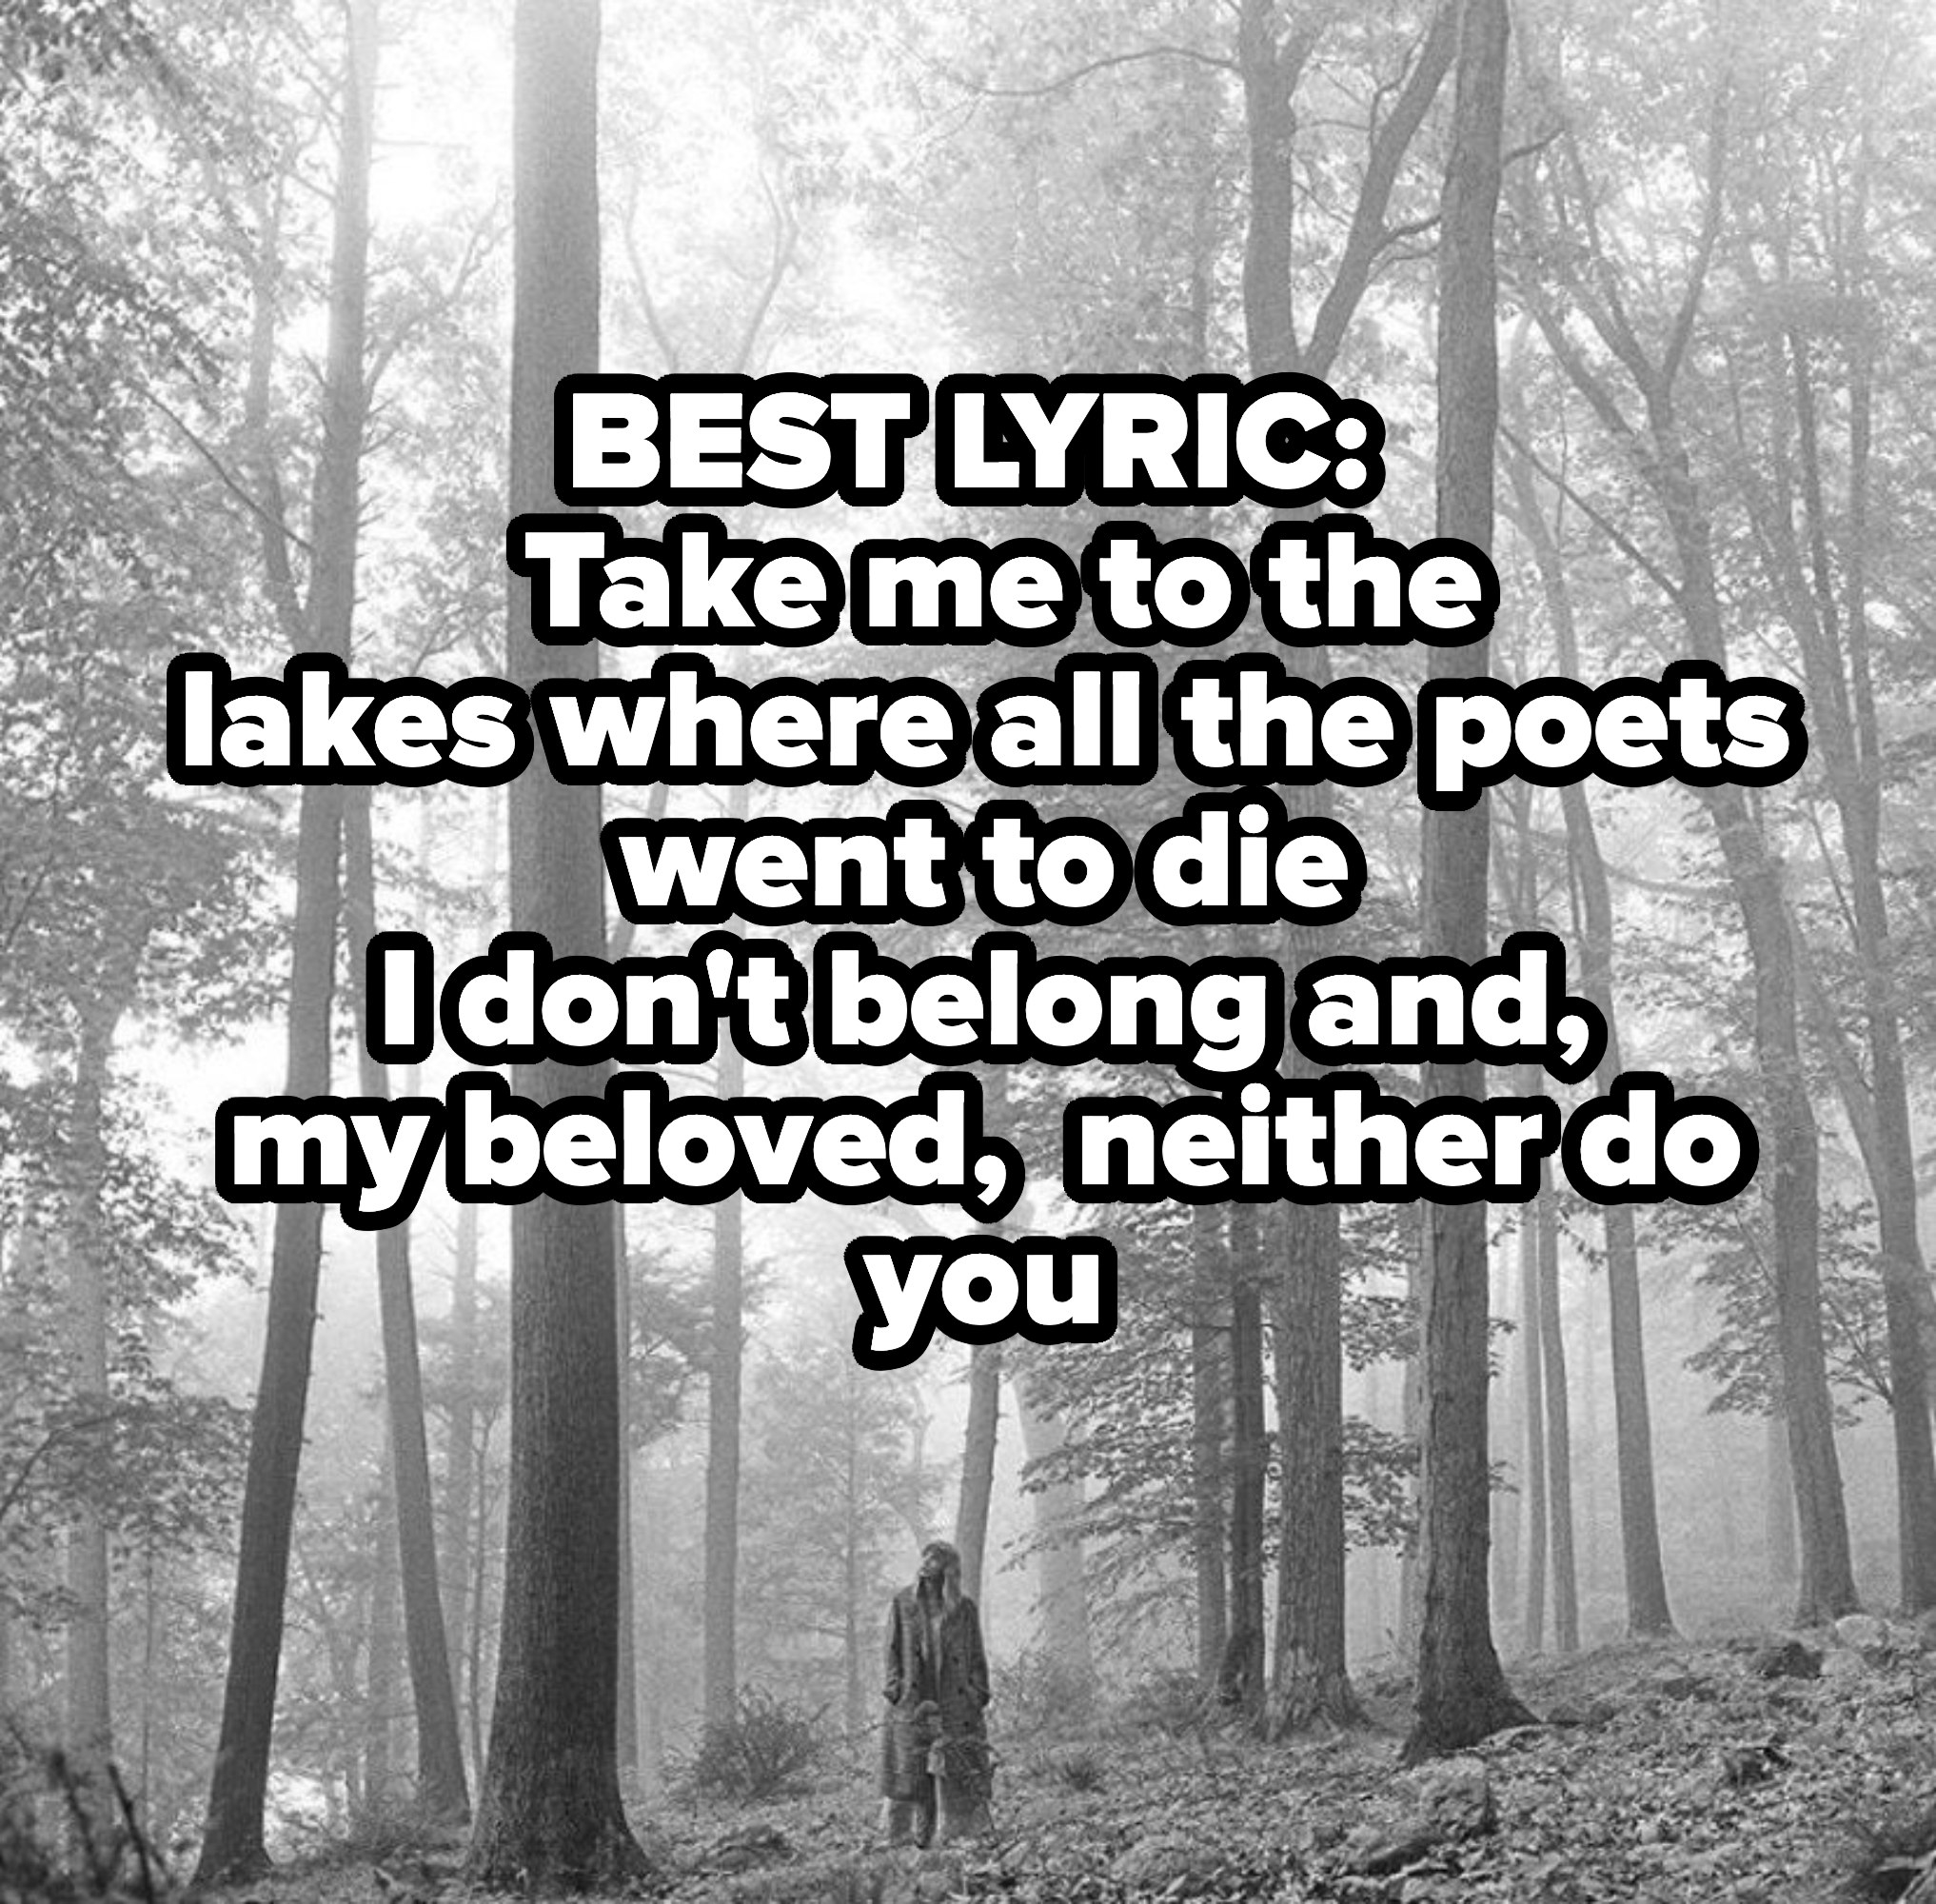 BEST LYRIC:   Take me to the Lakeswhere all the poets went to die I don't belong and, mybeloved, neither do you